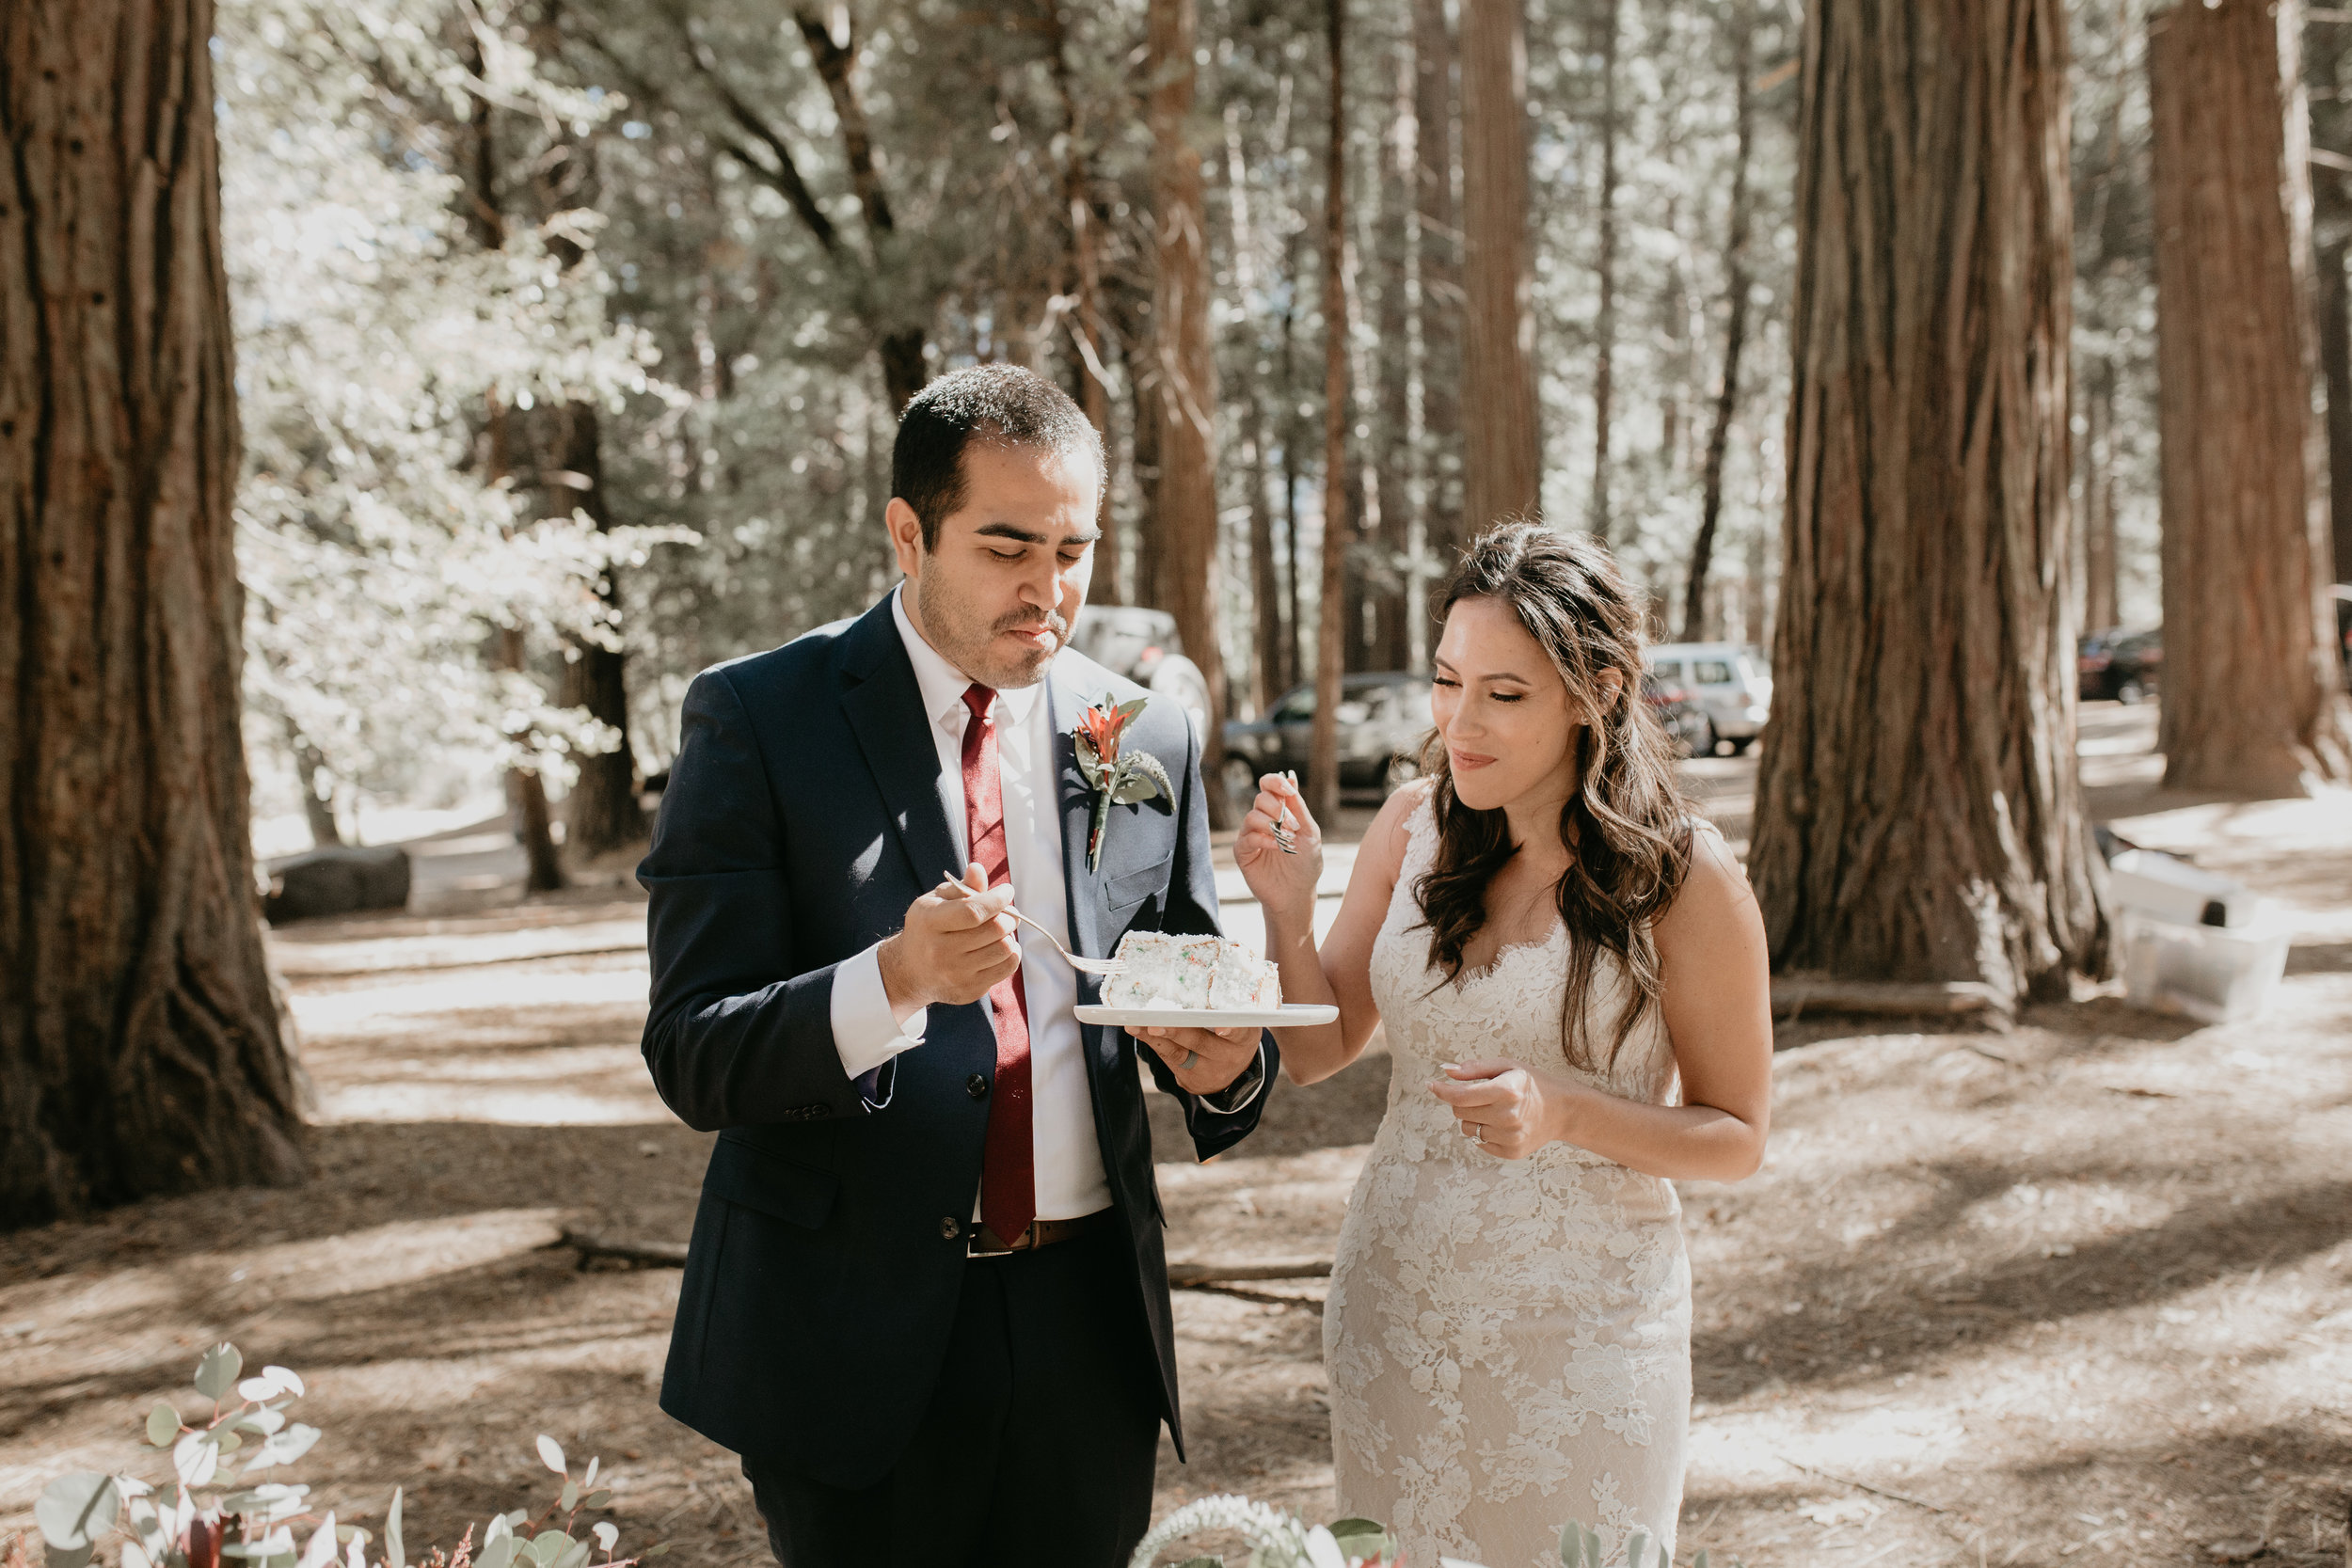 nicole-daacke-photography-intimate-elopement-wedding-yosemite-national-park-california-taft-point-sunset-photos-yosemite-valley-tunnel-view-first-look-sunrise-golden-granite-hiking-adventure-wedding-adventurous-elopement-photographer-68.jpg